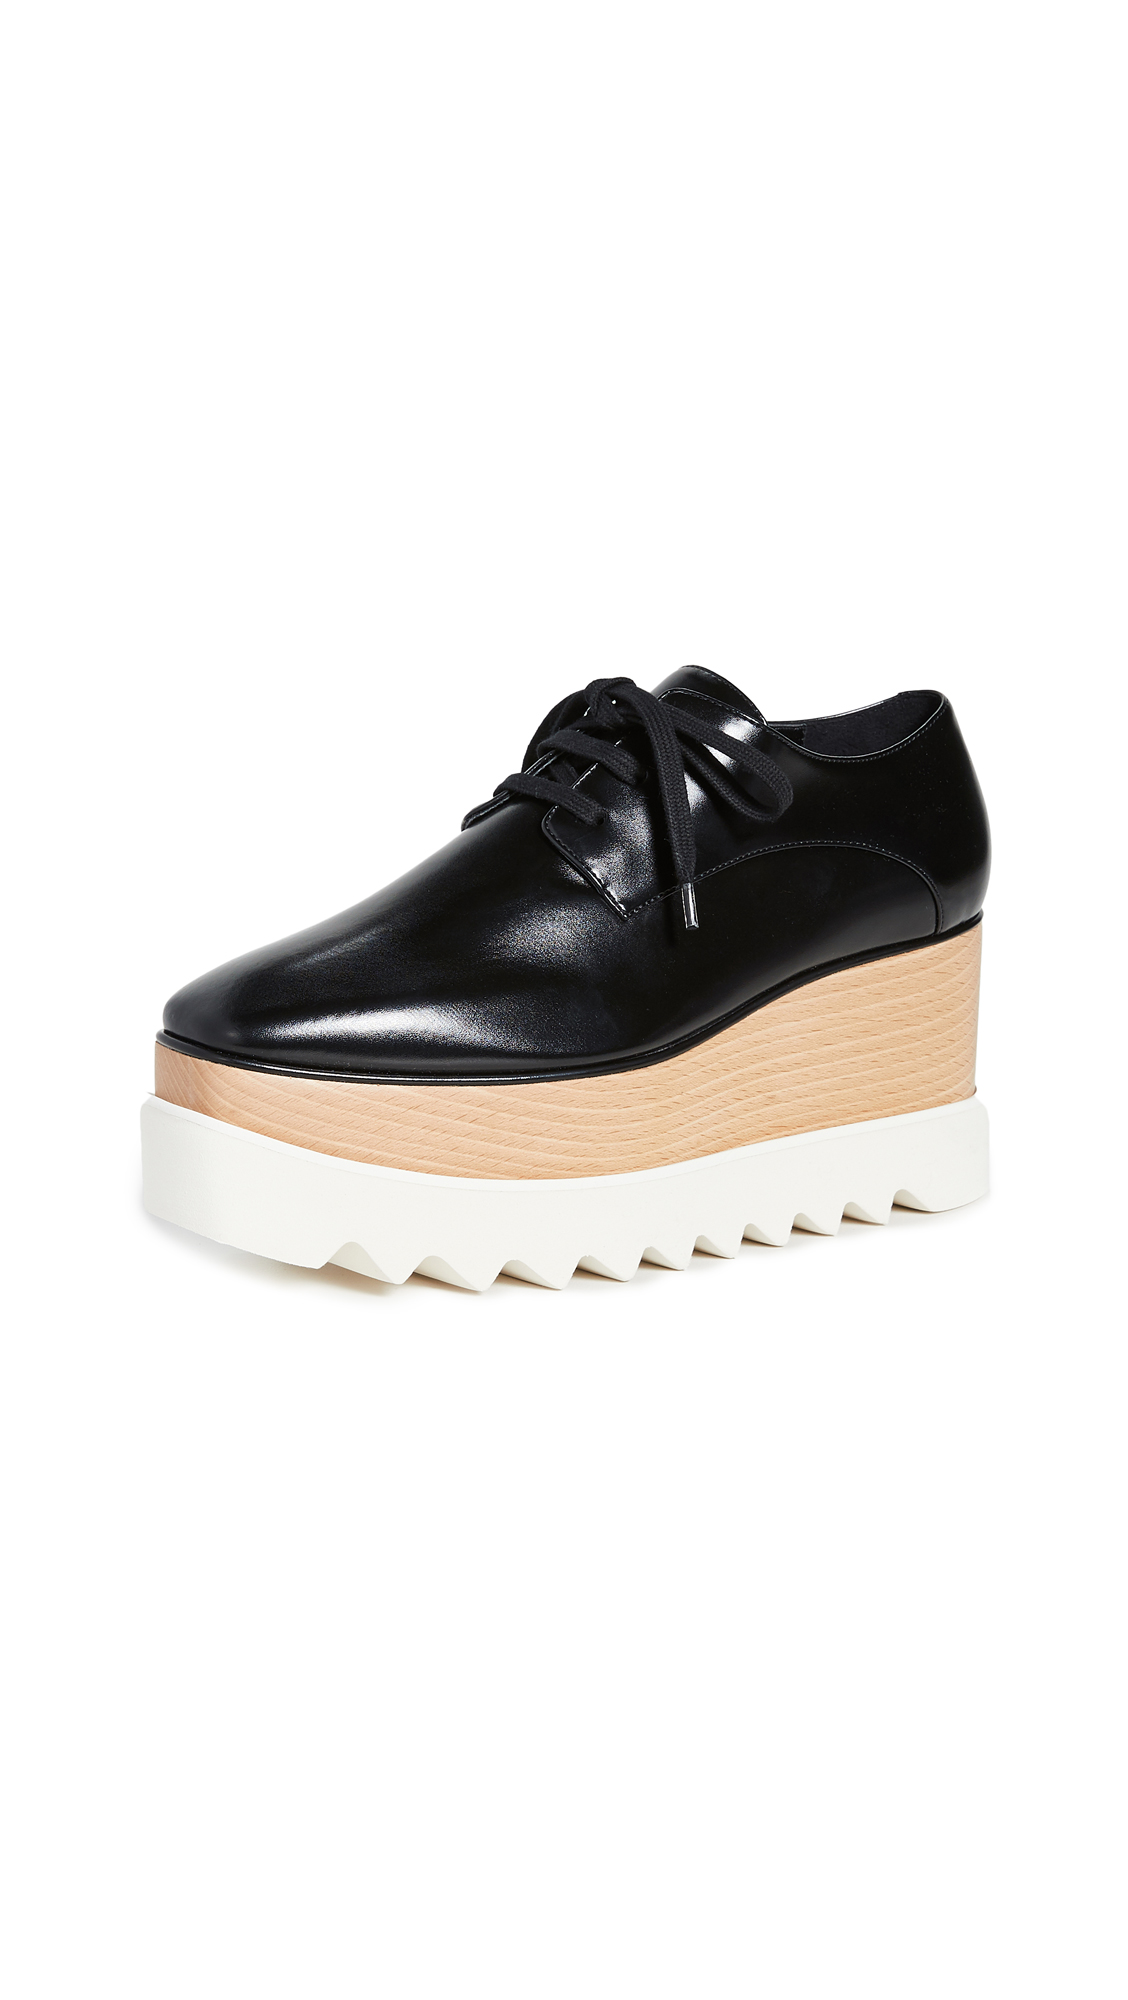 Buy Stella McCartney Elyse Lace Up Shoes online, shop Stella McCartney